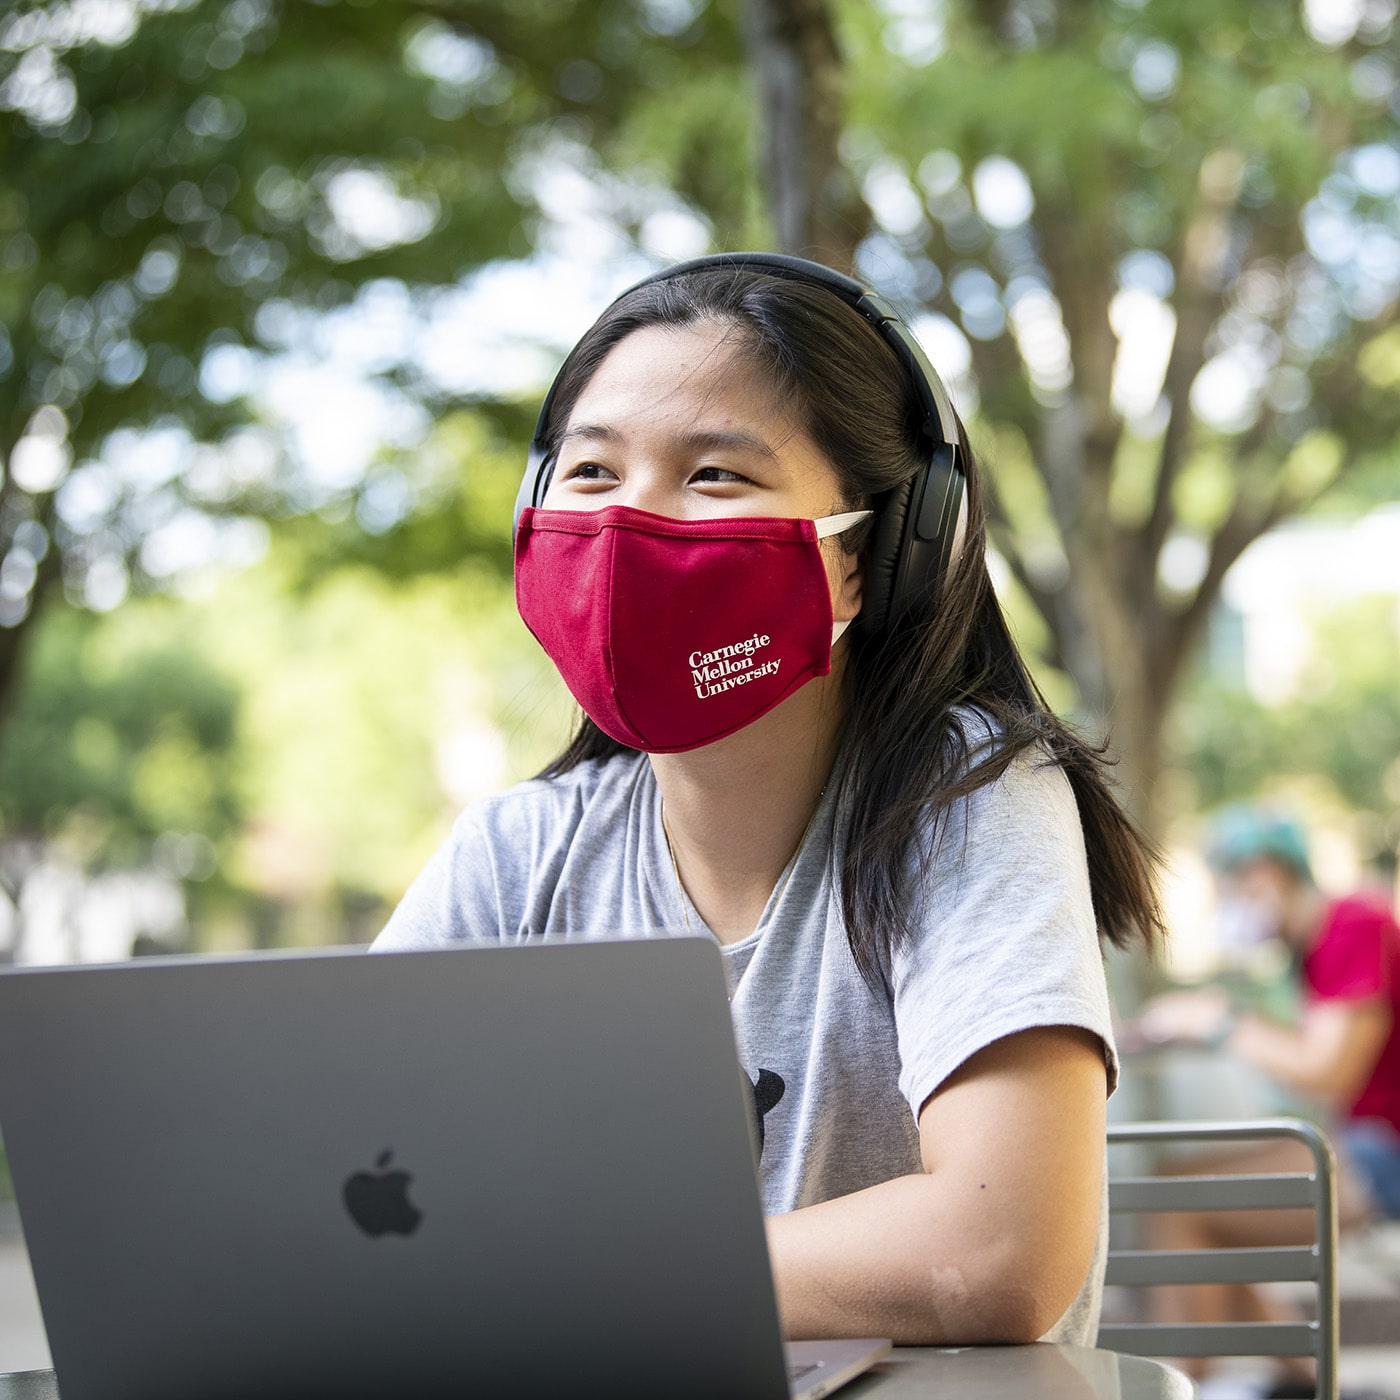 A photo of a student in a mask